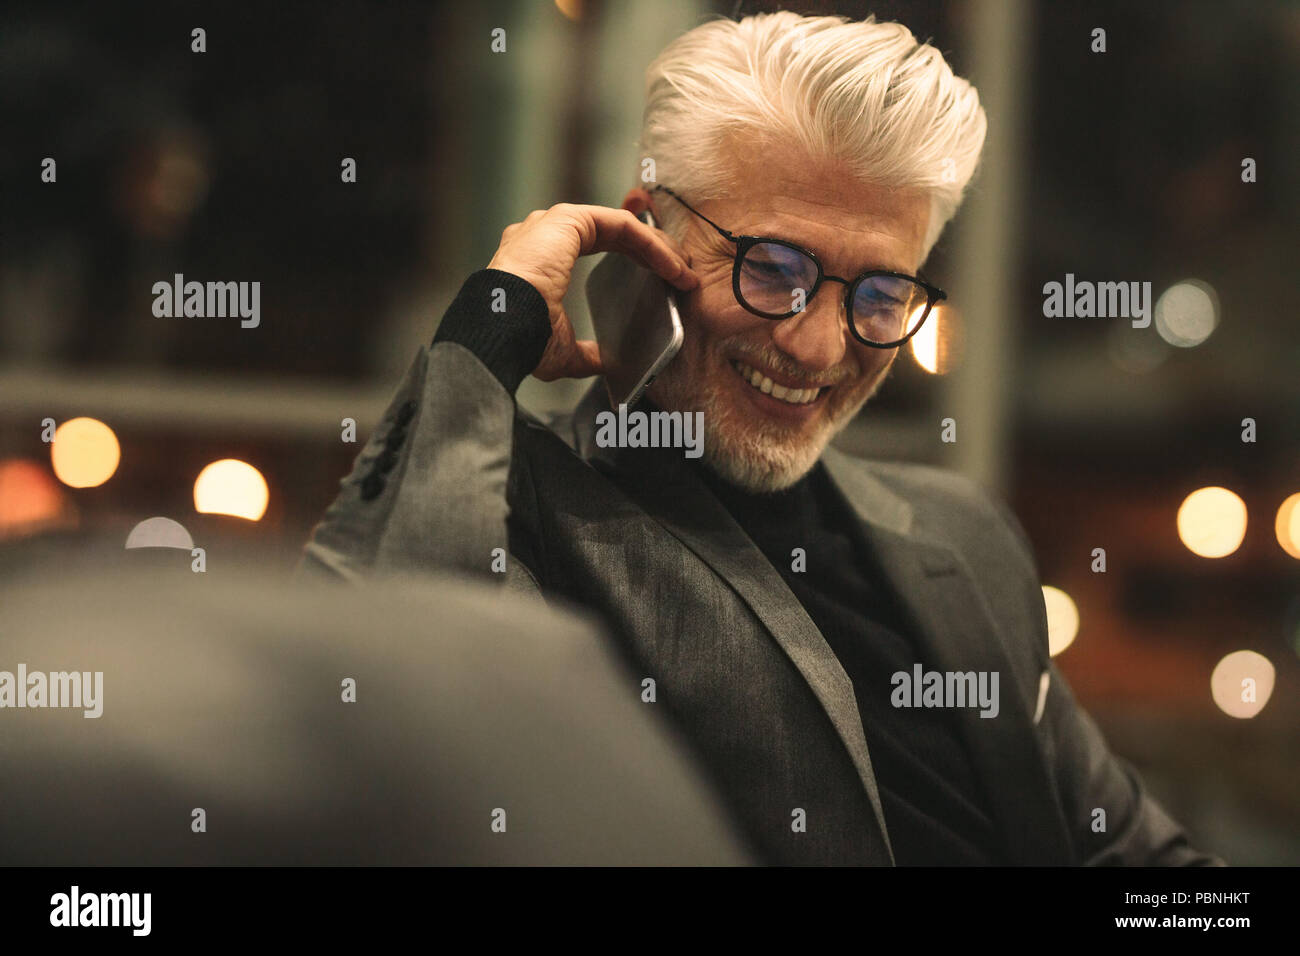 Mature business executive making a phone call and smiling. Caucasian man with eyeglasses talking on mobile phone in office. - Stock Image